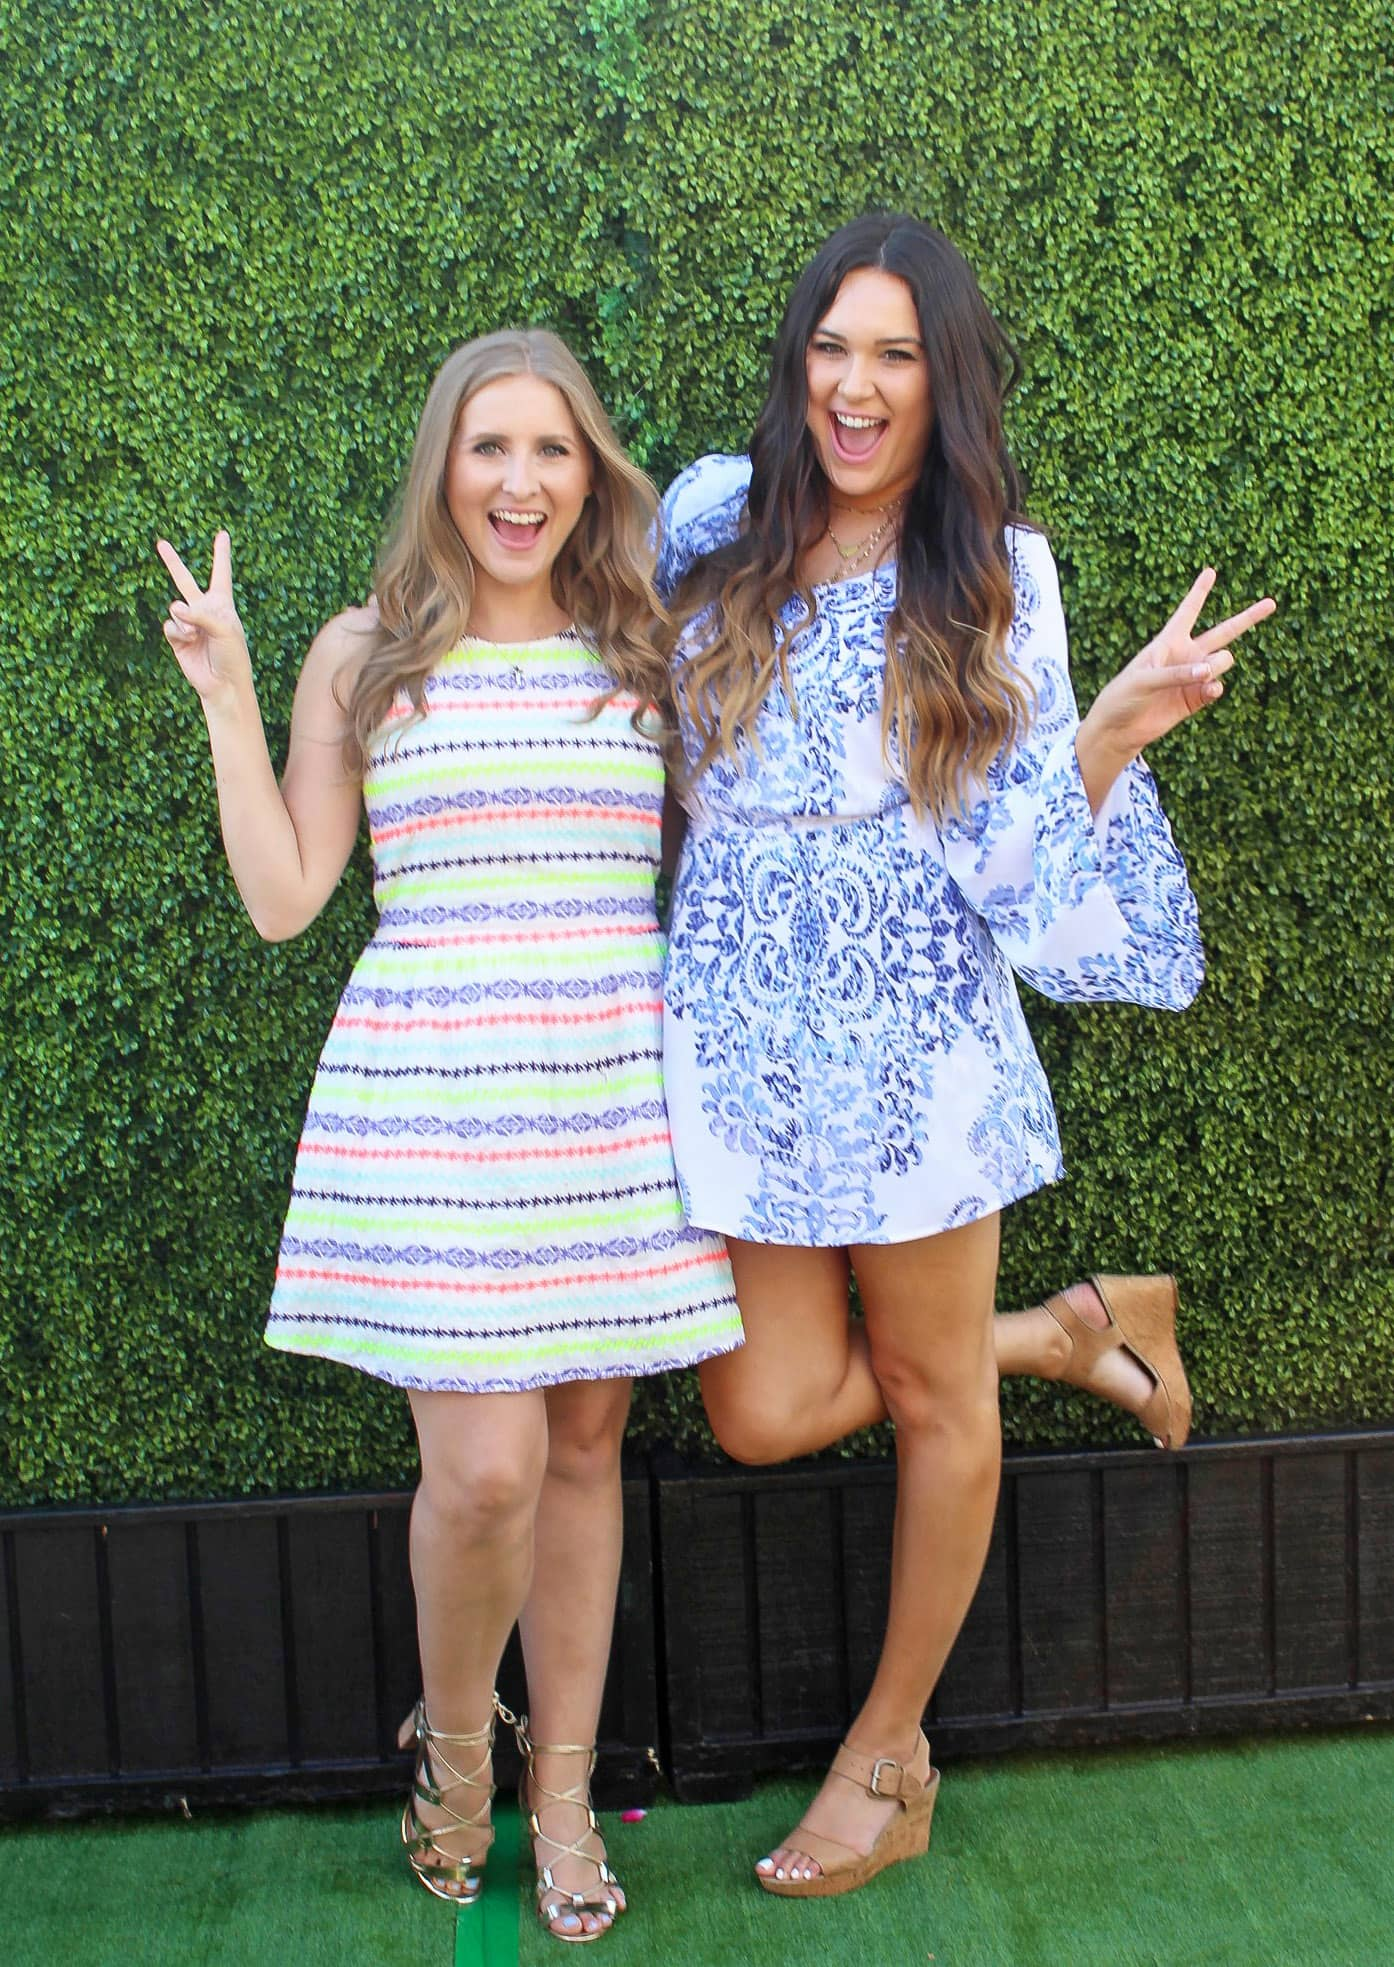 Beauty and style bloggers Ashley Brooke Nicholas and Mash Elle | Create + Cultivate Los Angeles 2016 Conference Recap + Review | Beauty and Style Blogger Ashley Brooke Nicholas